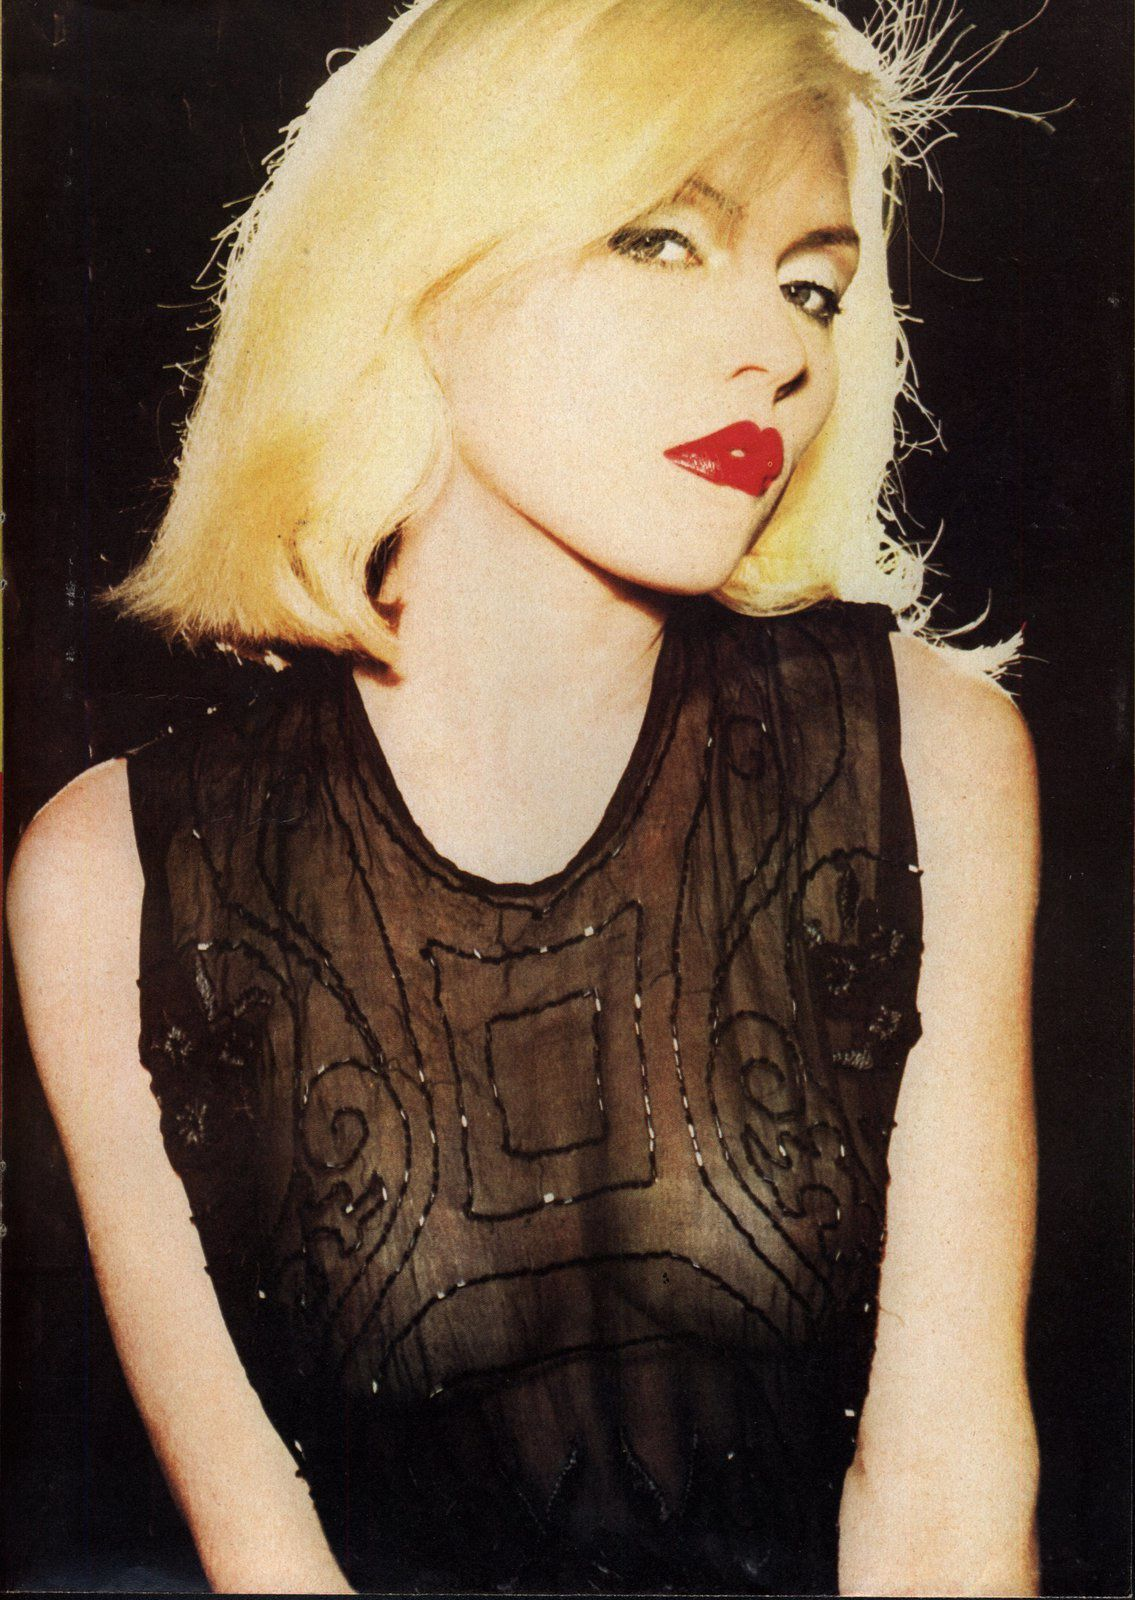 Blondie's Debbie Harry an Intimate Photo Portfolio' (Published in 1979)